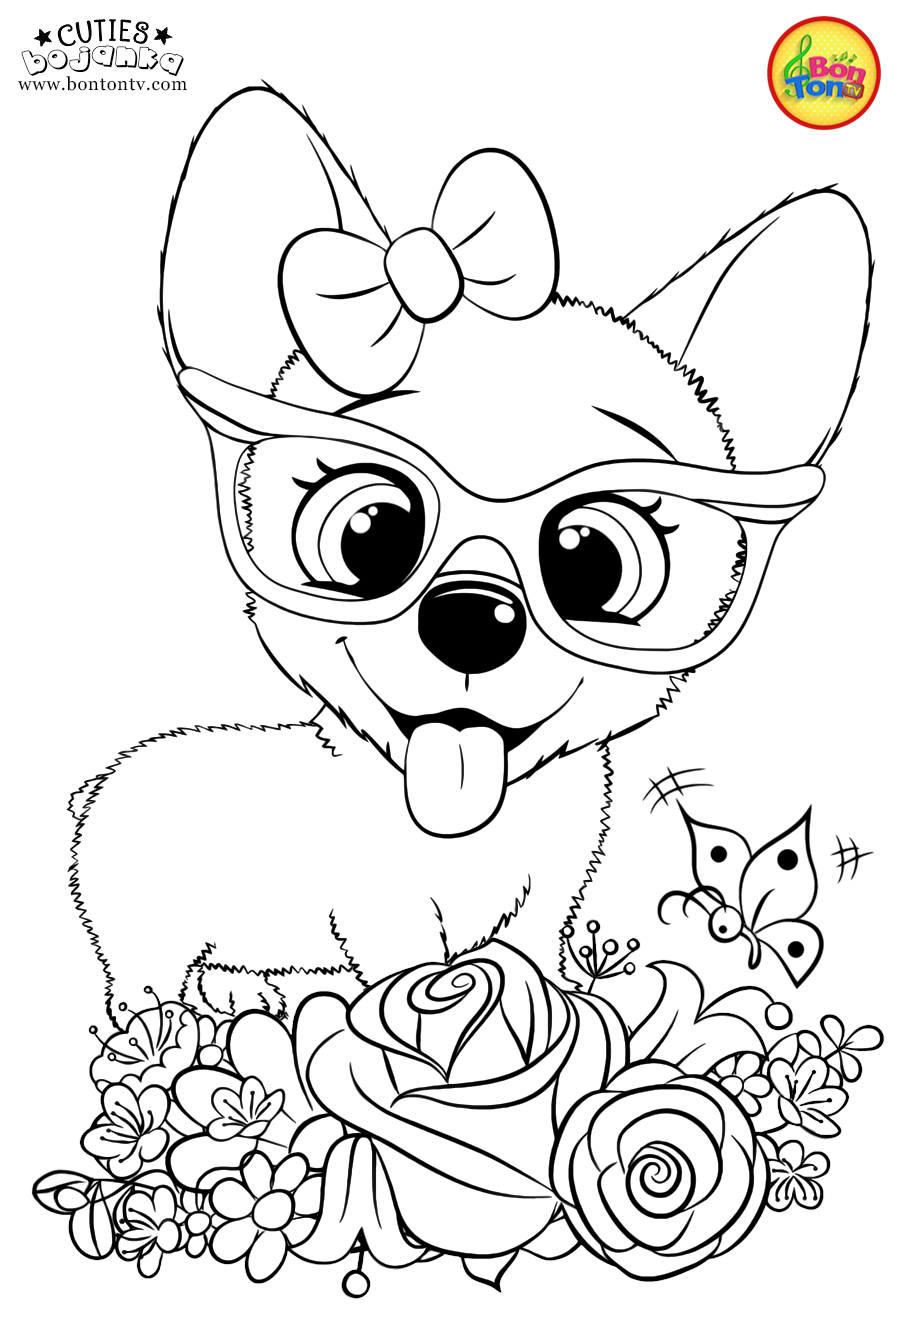 coloring pages disney animals disney animal roo coloring pages from winnie the pooh cartoon disney coloring pages animals